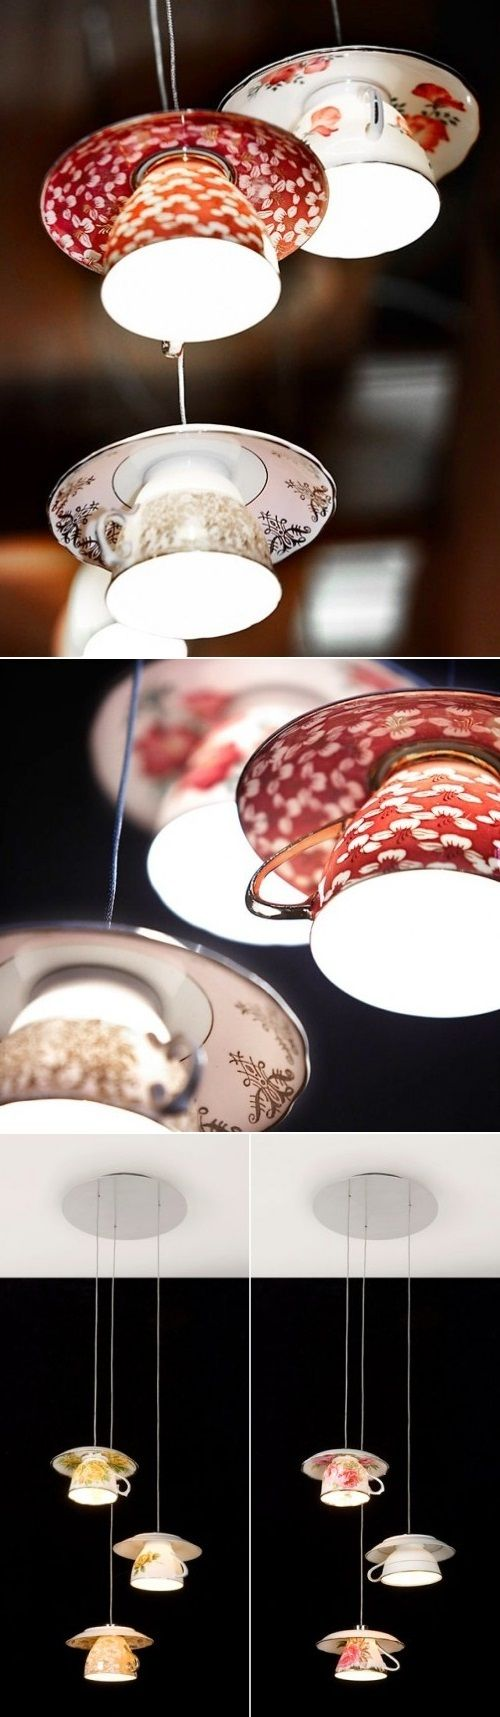 Best mom cushion cover valentineblog net - By Using Recycled Material To Create Things Like Diy Lamps And Chandeliers You Ll Surprise Yourself With How Good It Can Look